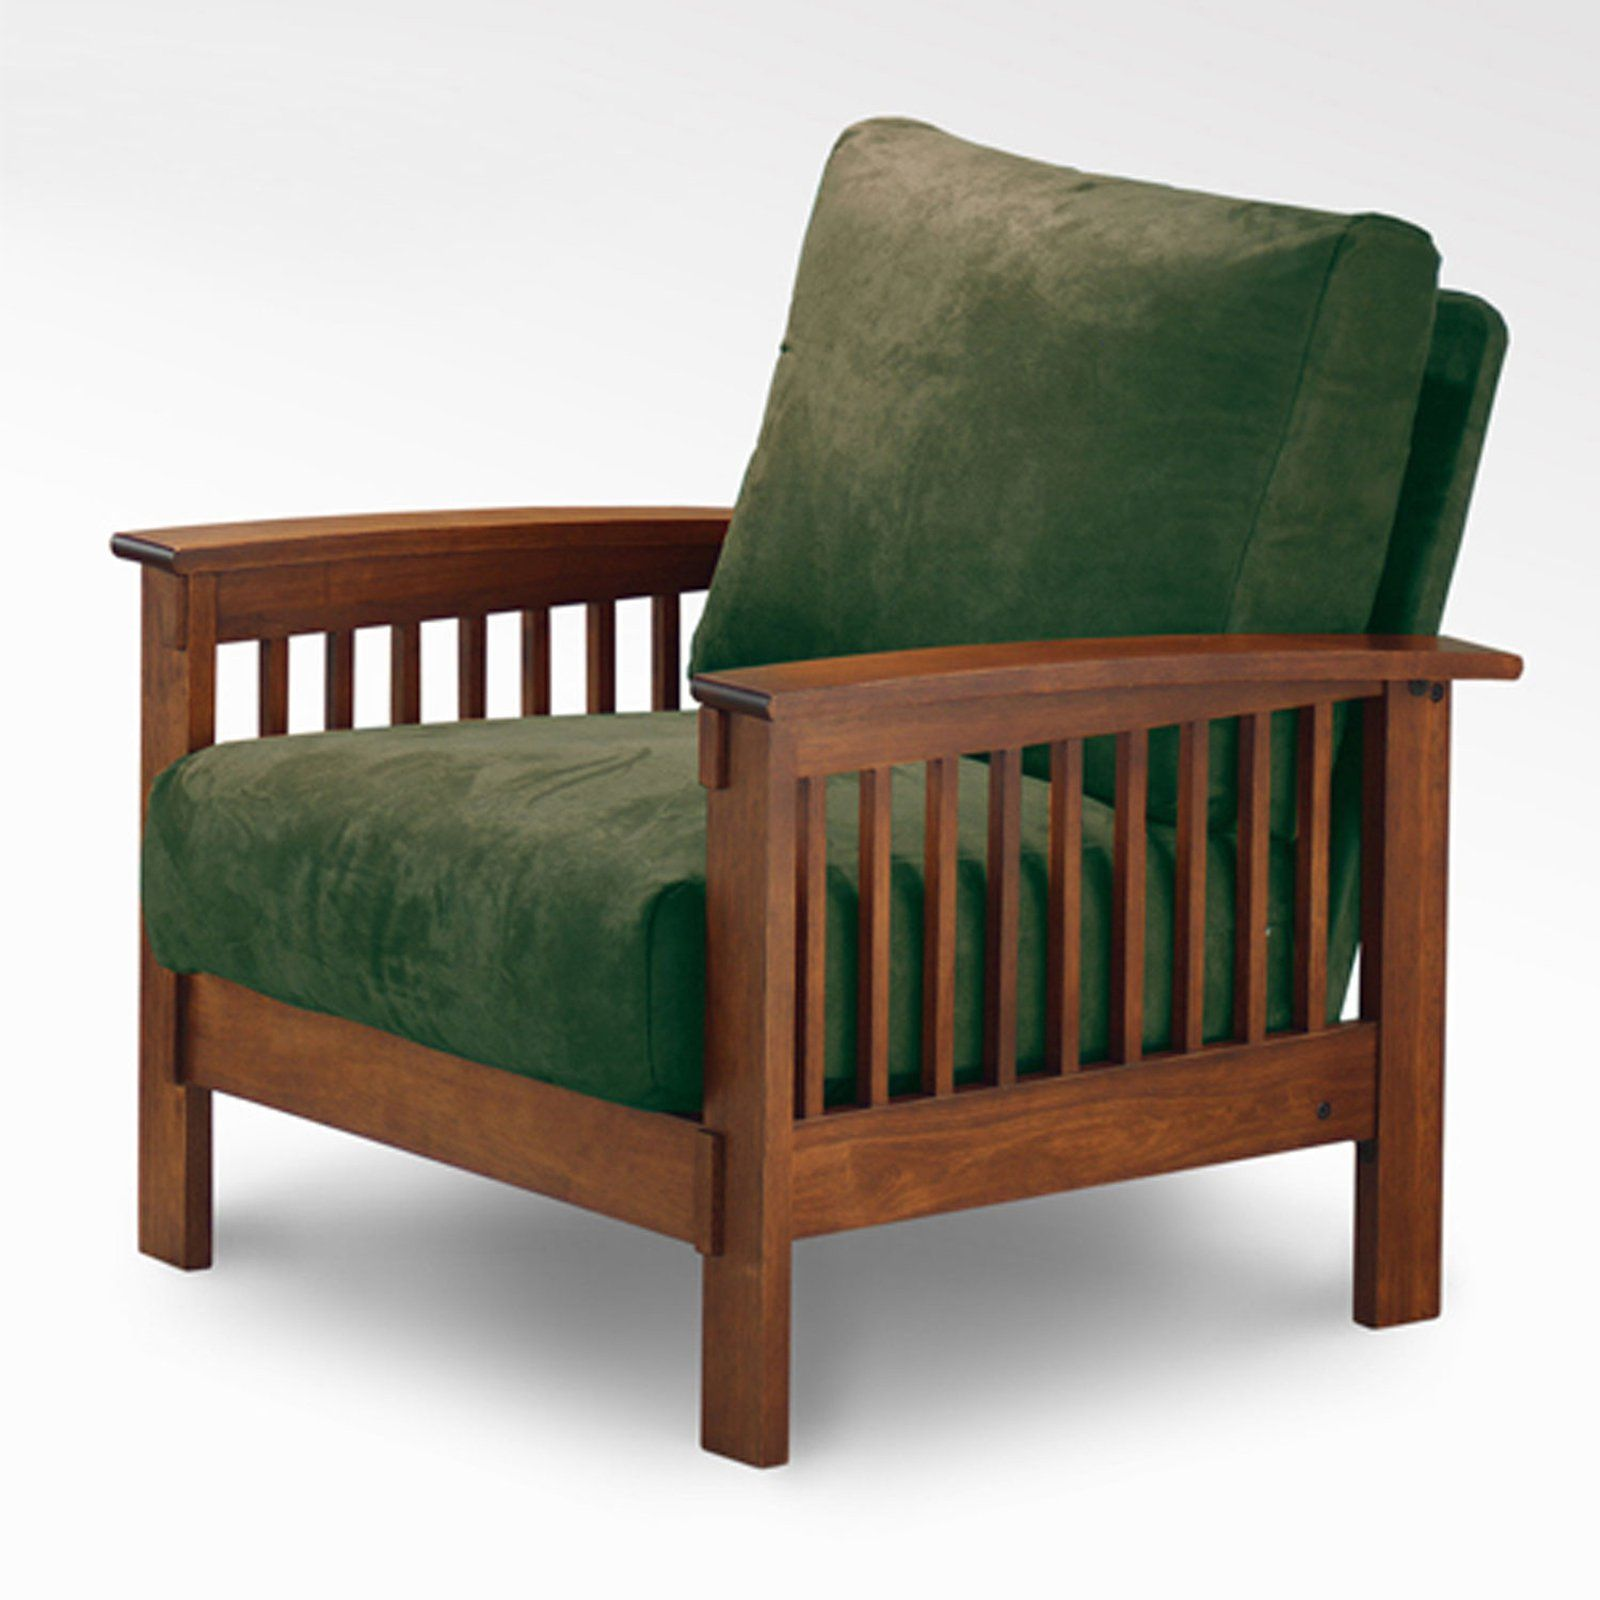 Weston Home Ashton Chair In 2020 Mission Chair Cheap Office Chairs Living Room Chairs